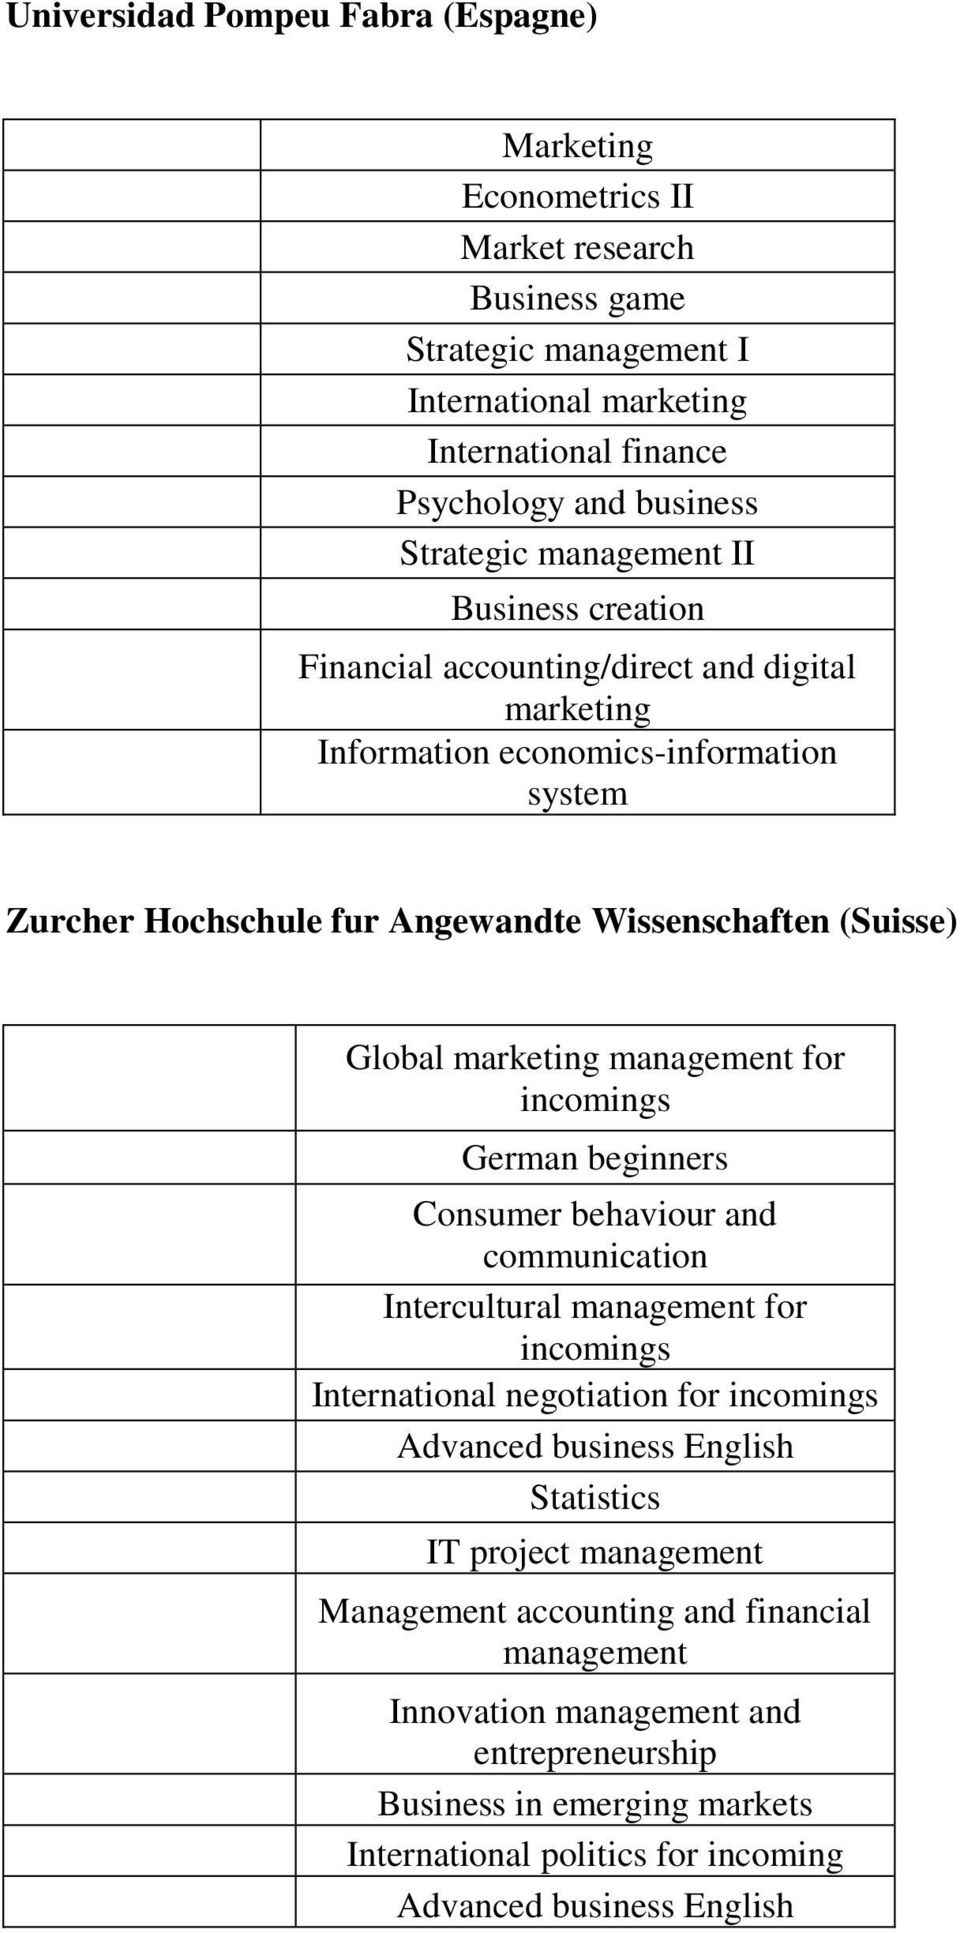 management for incomings German beginners Consumer behaviour and communication Intercultural management for incomings International negotiation for incomings Advanced business English